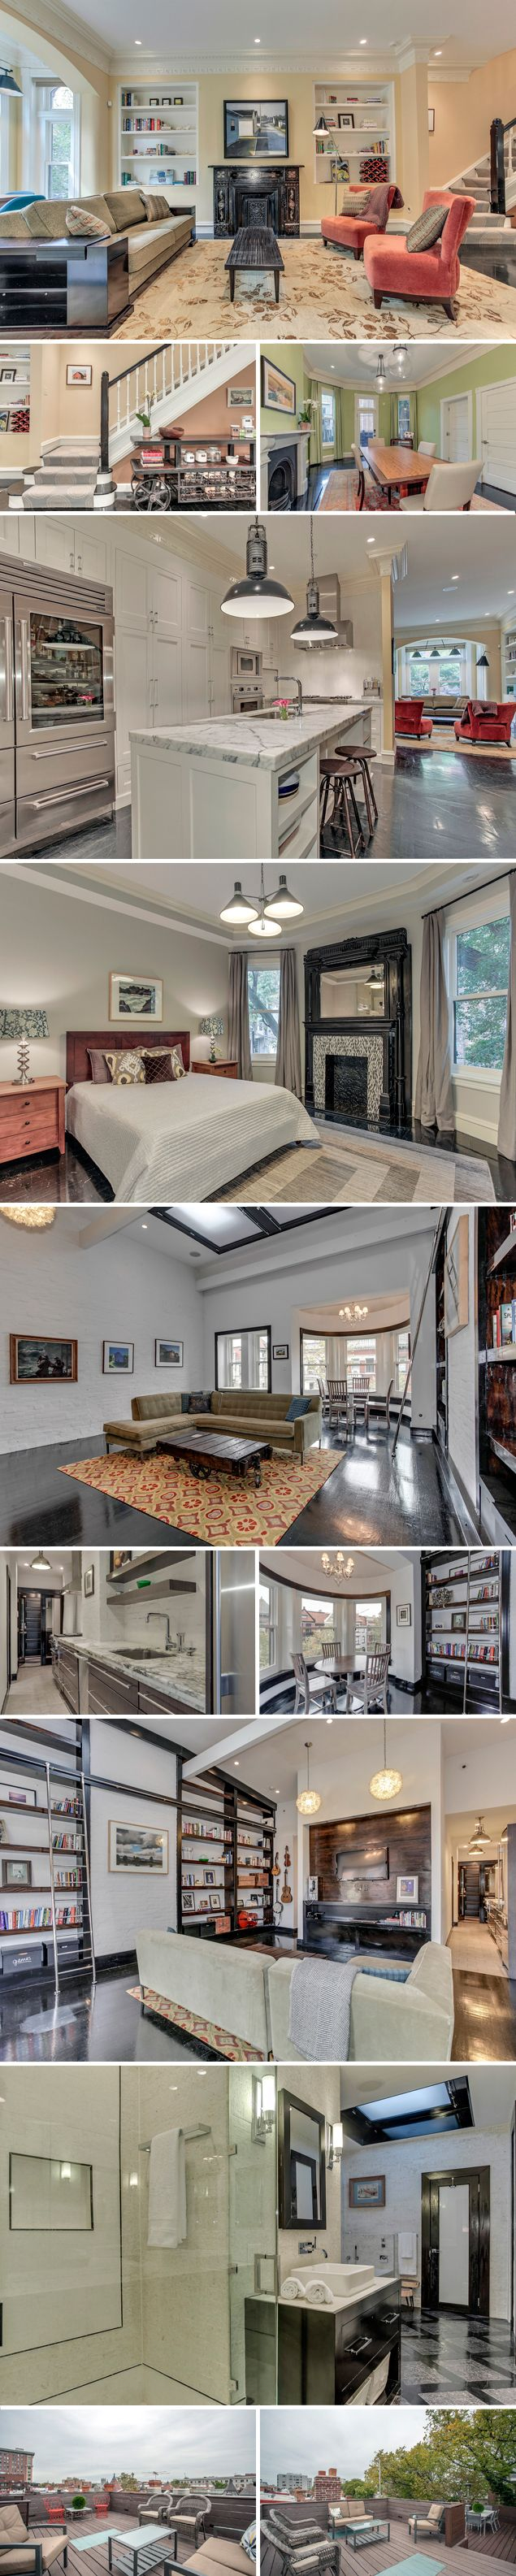 Most Expensive Homes On The Market: A $2895 Million Victorian Rowhouse In  Dupont